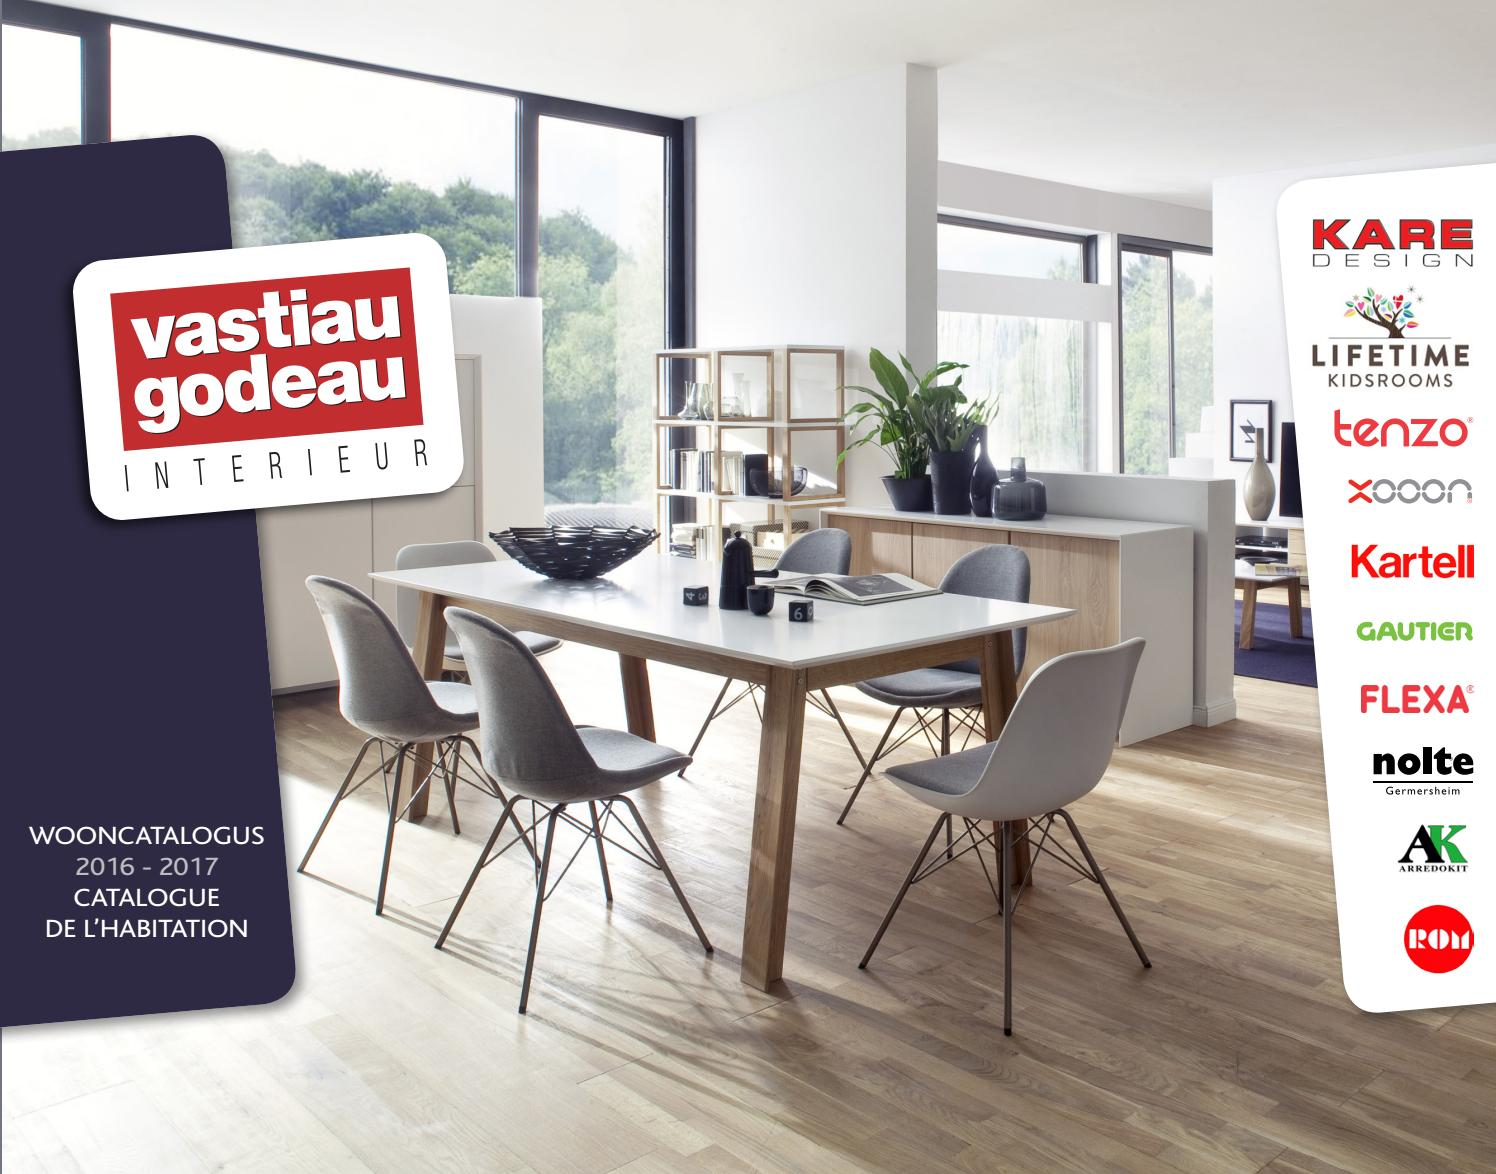 Vas14 032 najaarscatalogus shopping by Vastiau-Godeau - issuu